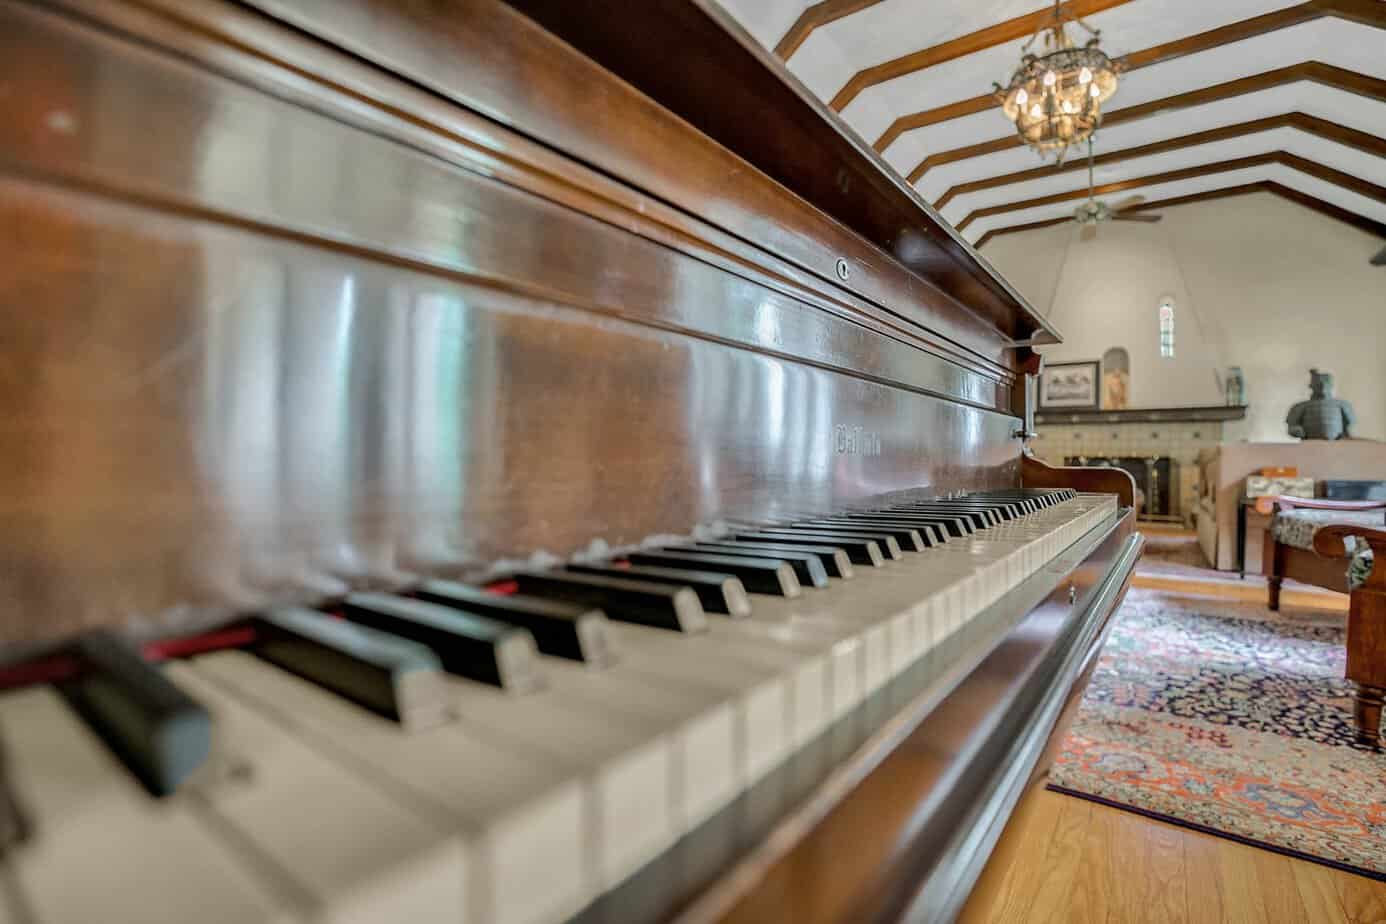 Picture upclose of grand Piano piano in a grand room measuring 35x20 beamed with two chairs, blue rugs, decorative spanish fire place, and arched windows in the home for sale at 4024 W Bay to Bay Tampa FL 33629